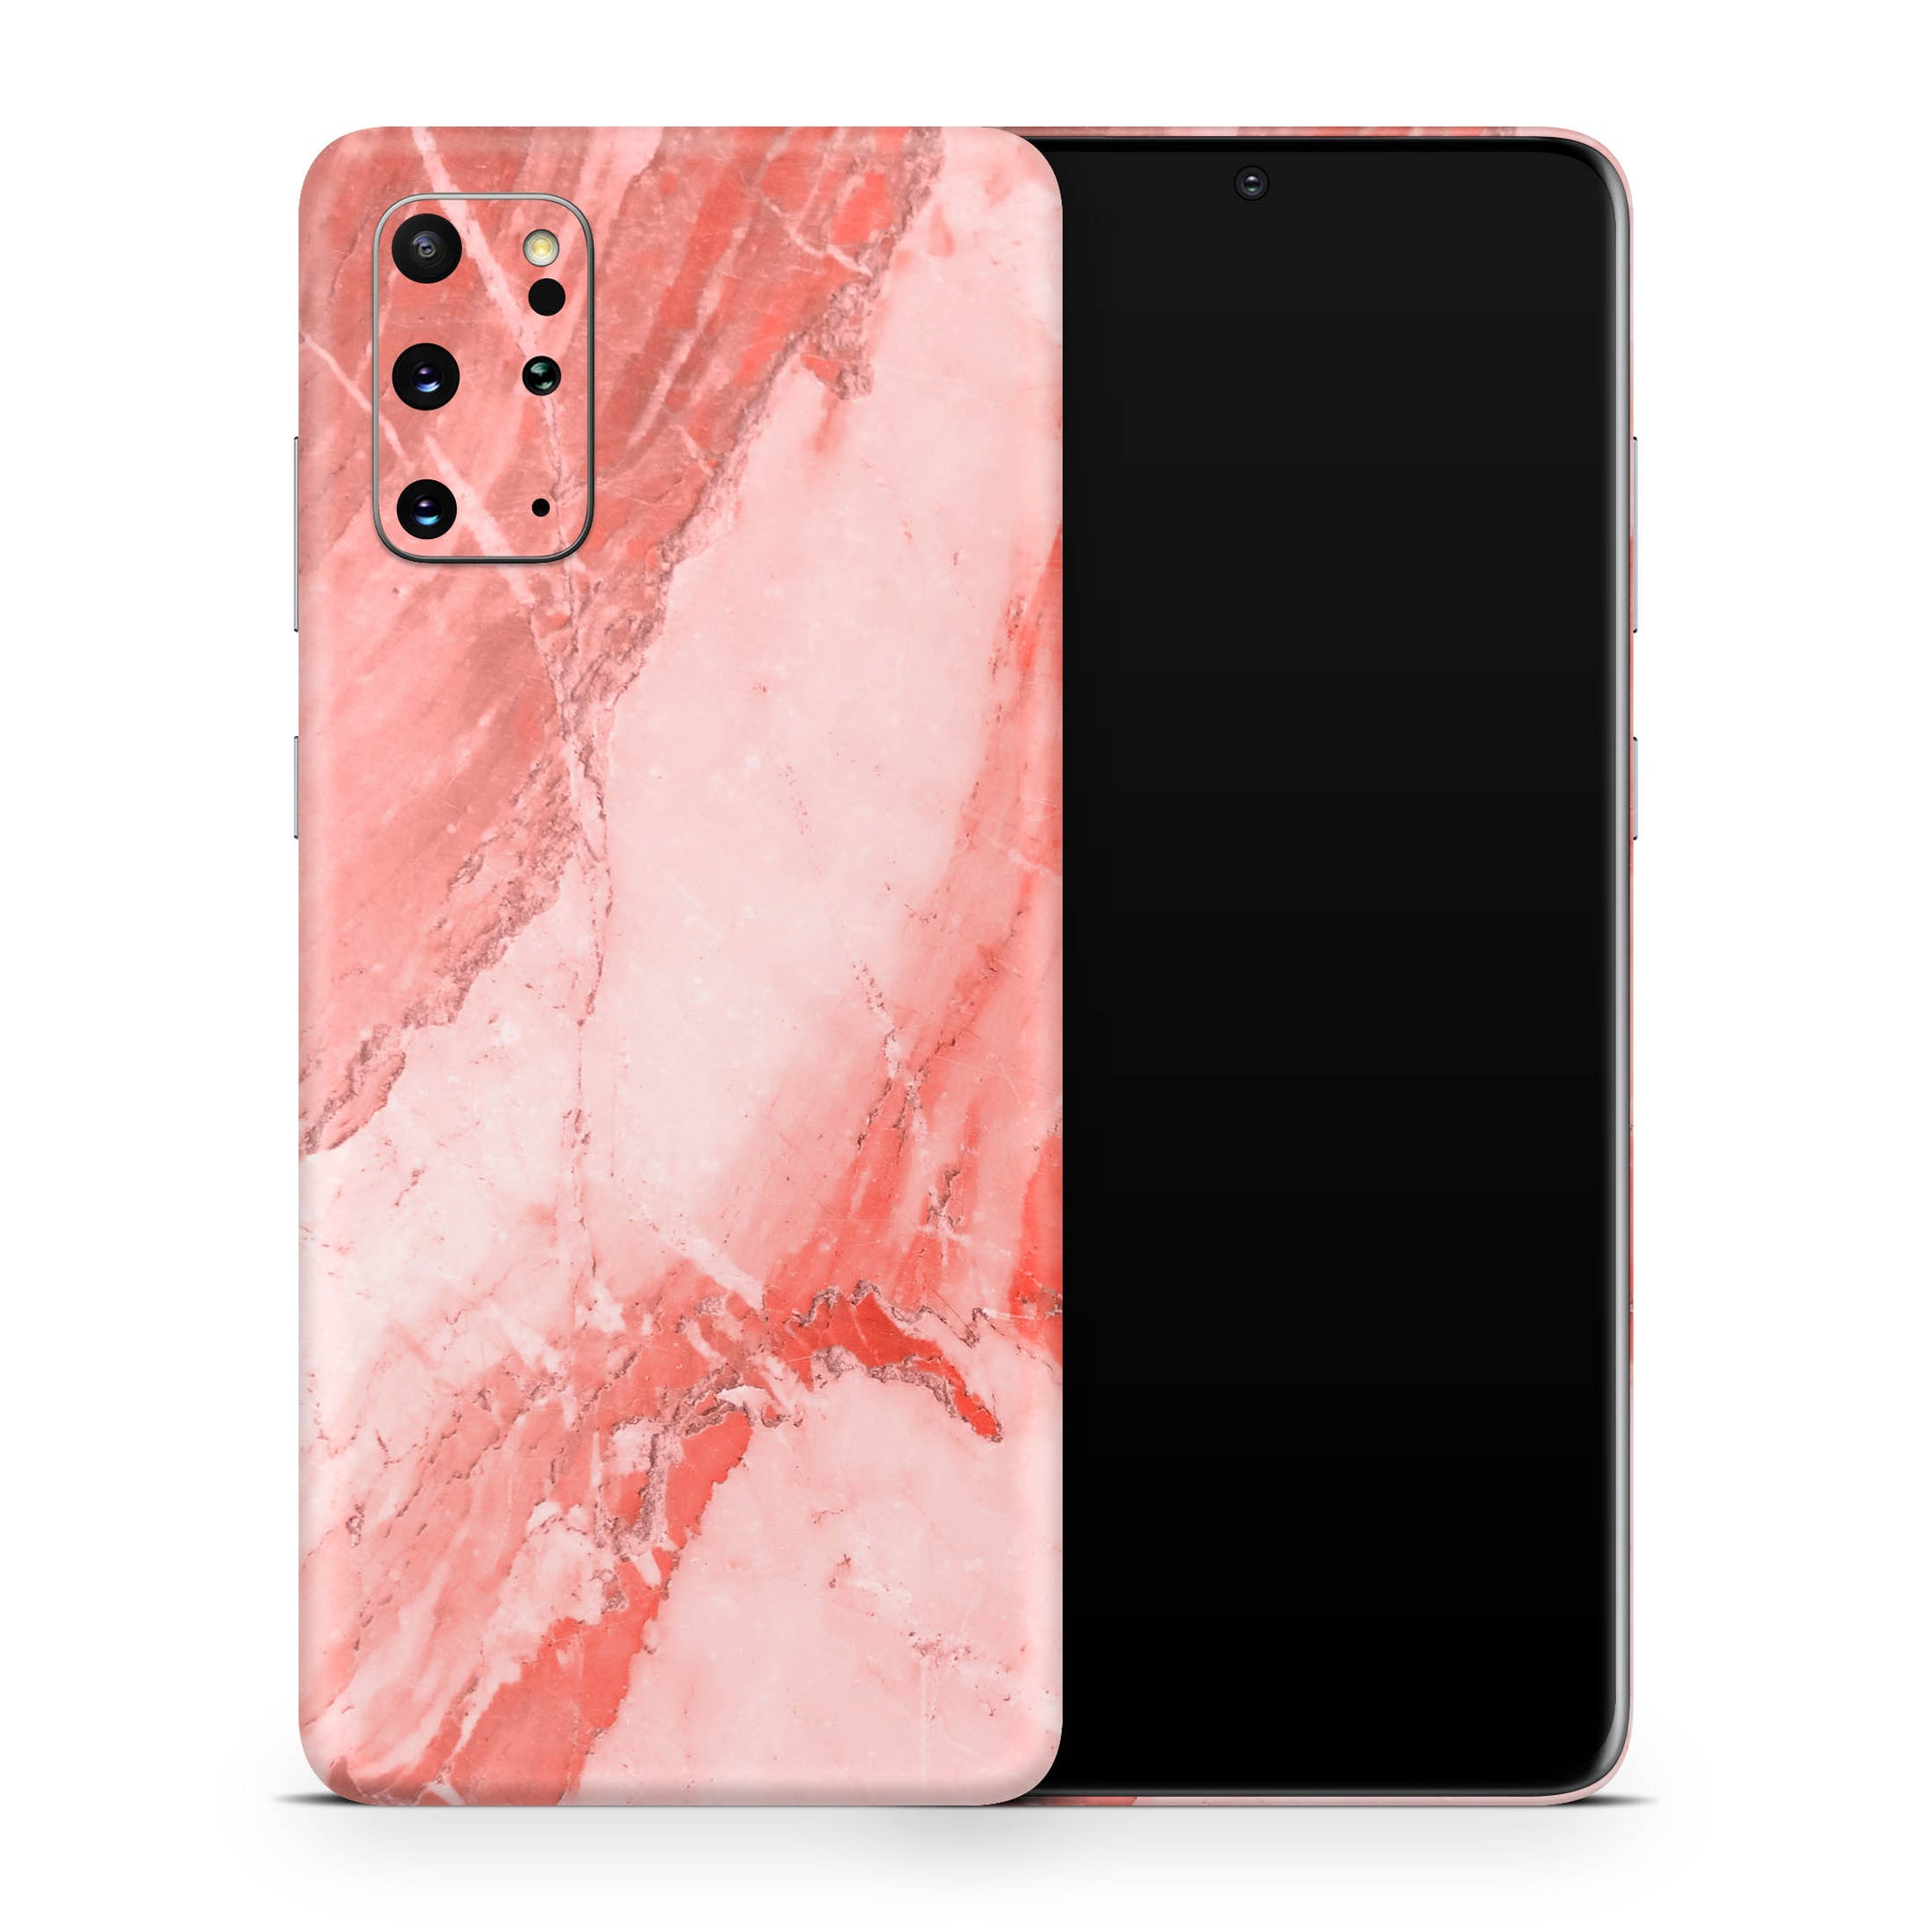 Coral Marble Galaxy S20 Ultra Skin + Case-Uniqfind